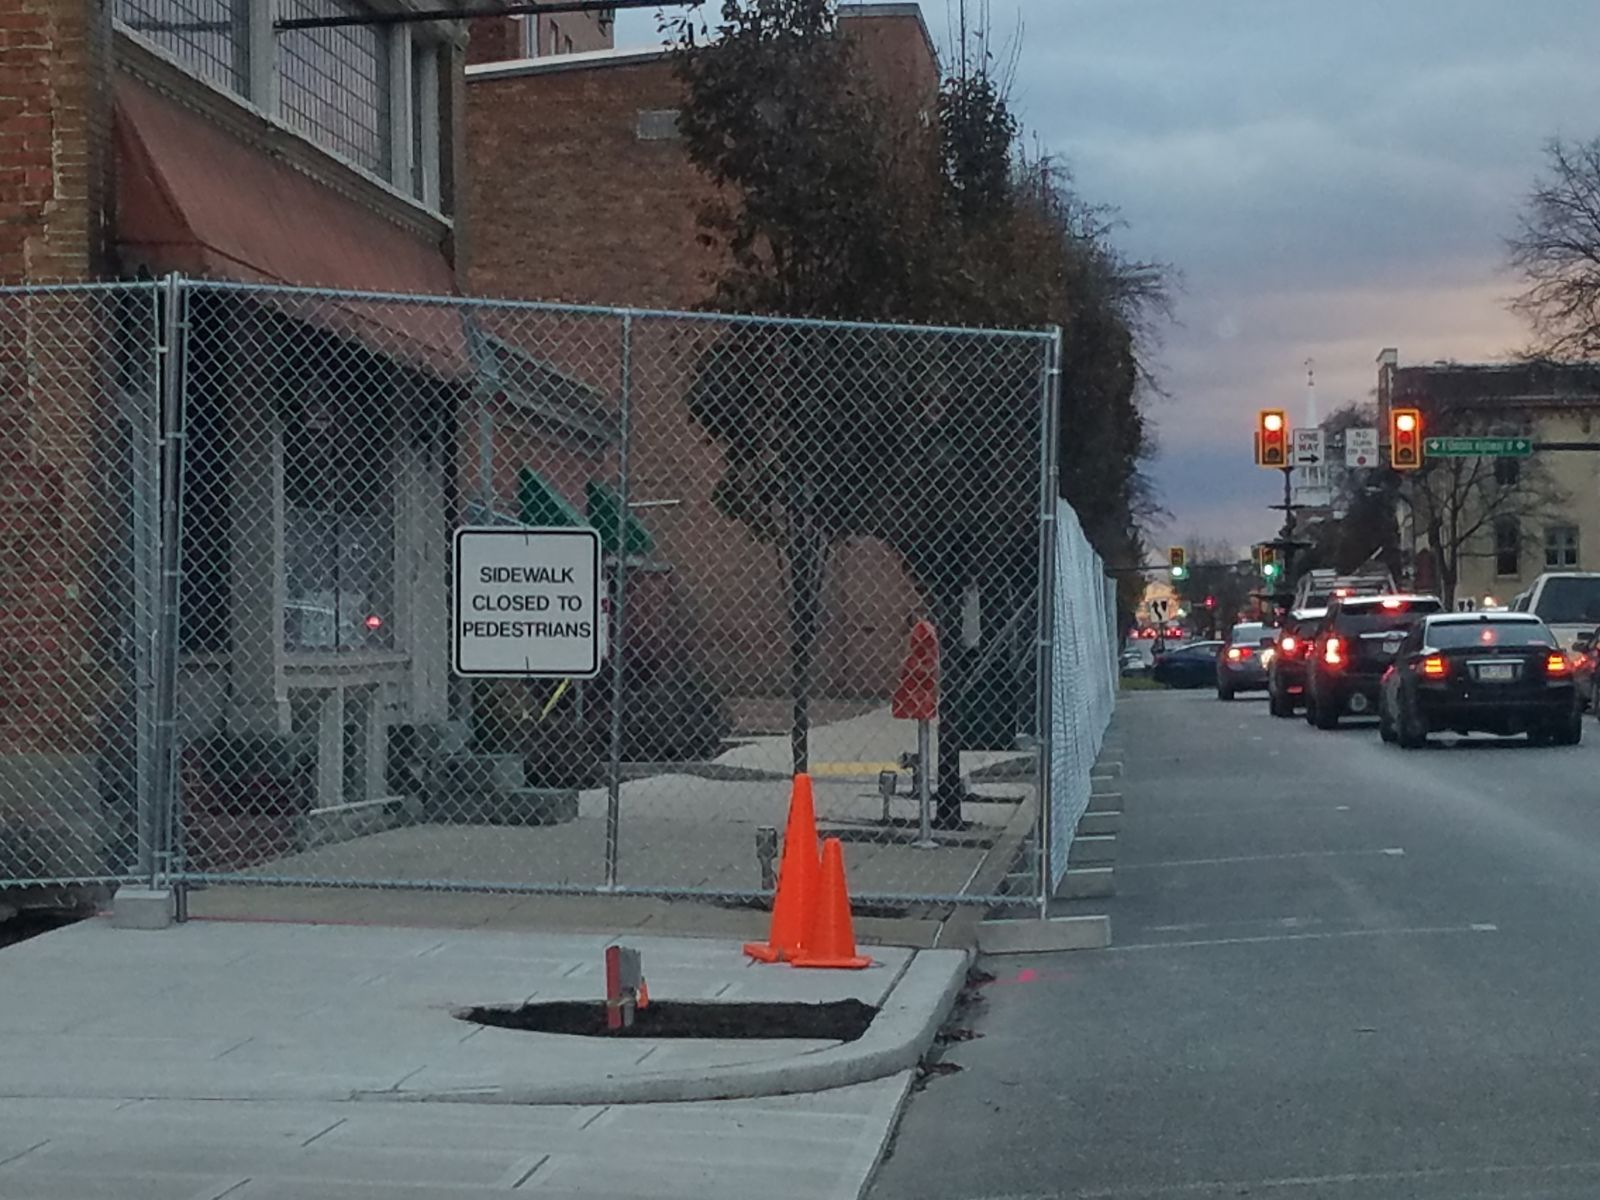 Sidewalk fencing along Main Street in Chambersburg with closed to pedestrian traffic sign.